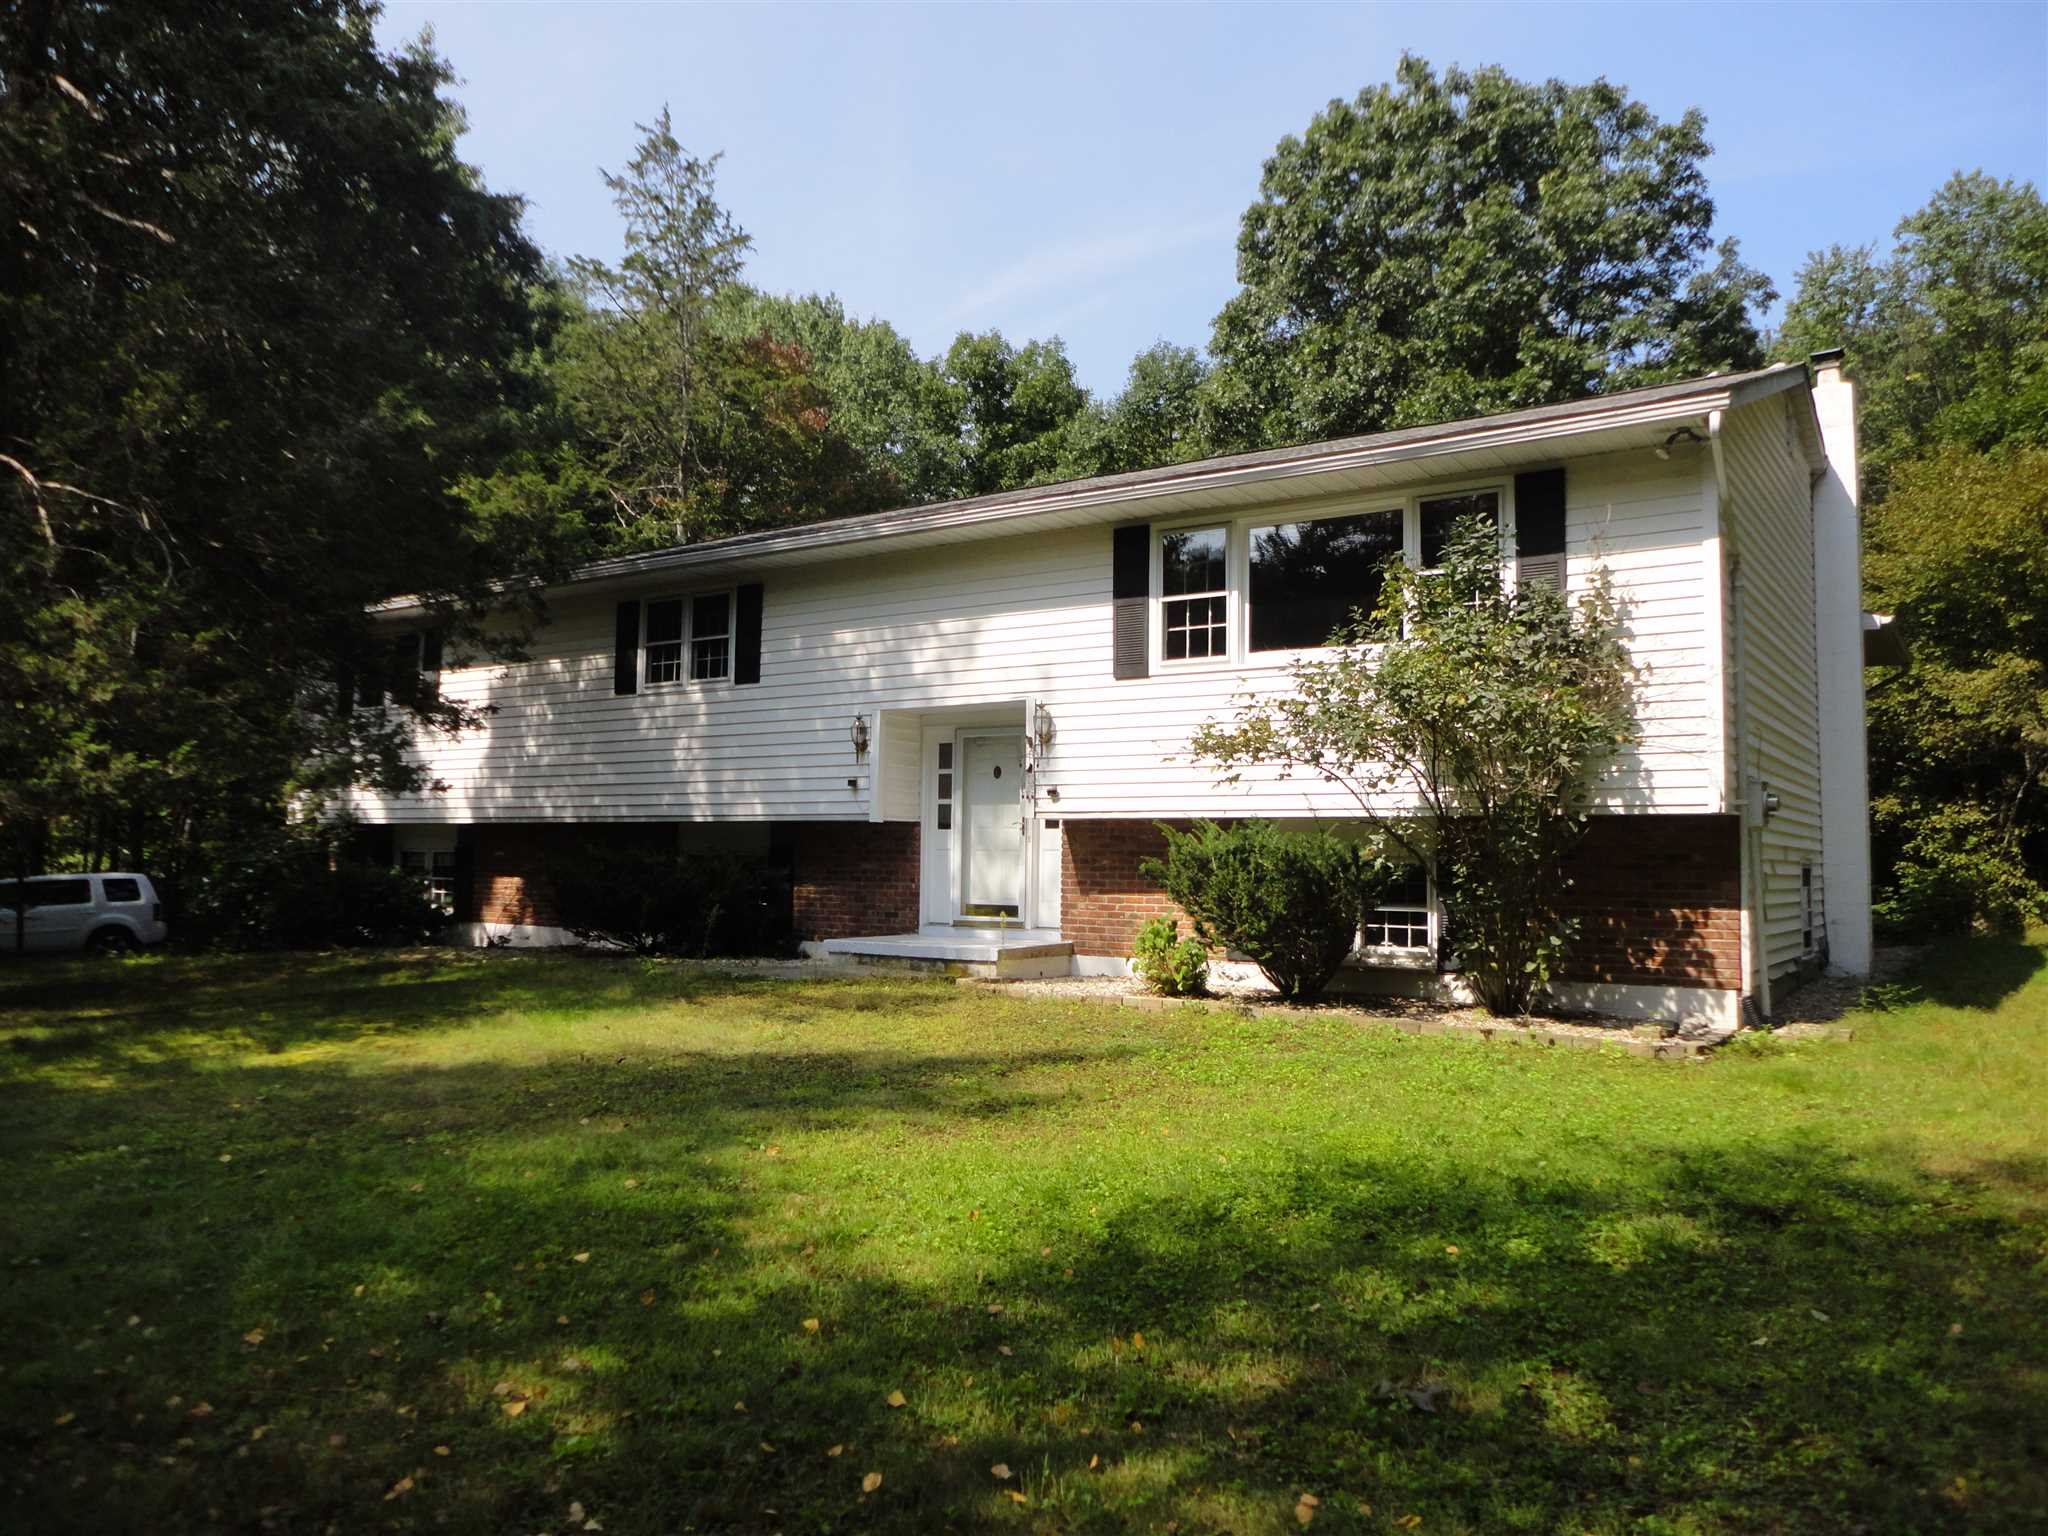 Single Family Home for Sale at 42 DENISE COURT 42 DENISE COURT Pleasant Valley, New York 12578 United States